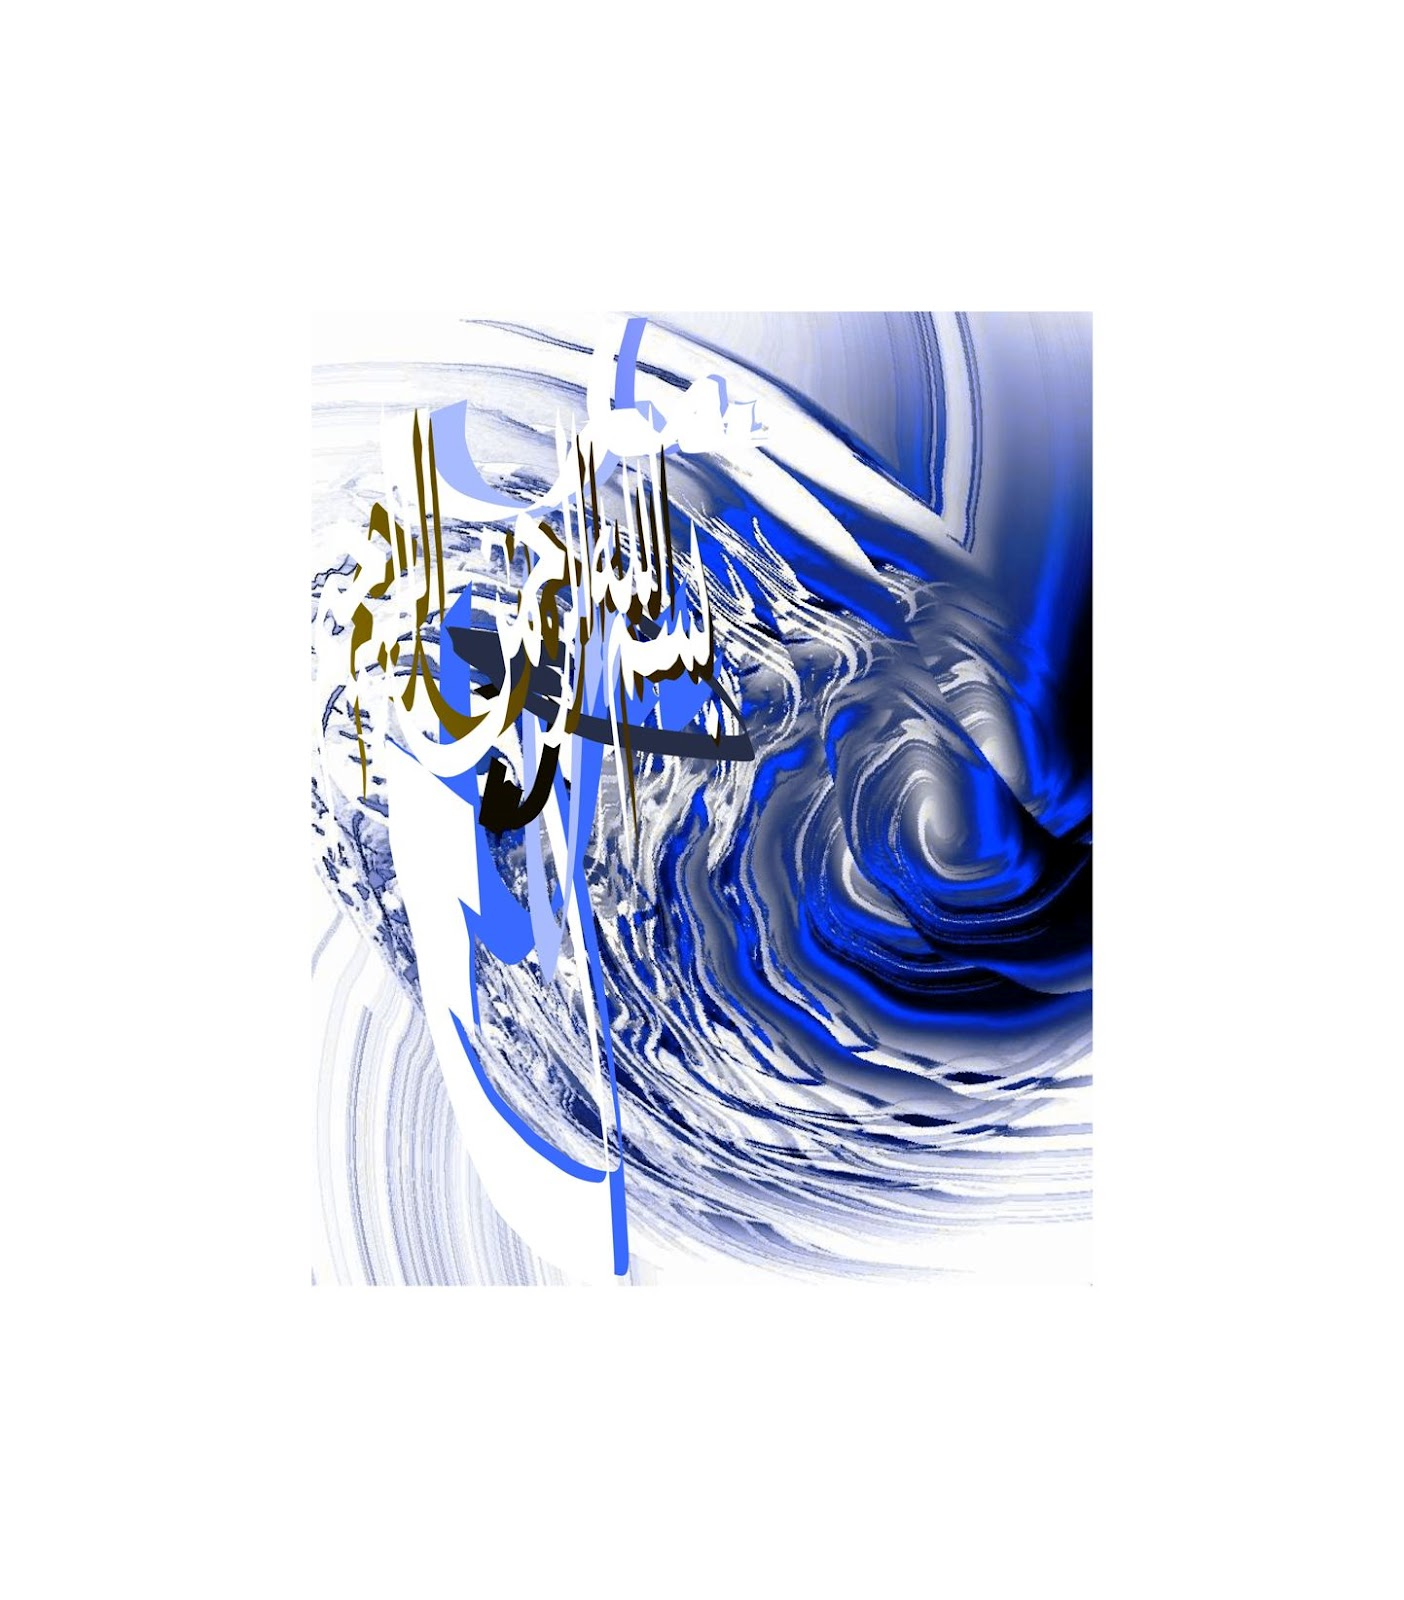 Abstract Calligraphy Abstract Calligraphy Pearls Of Blue